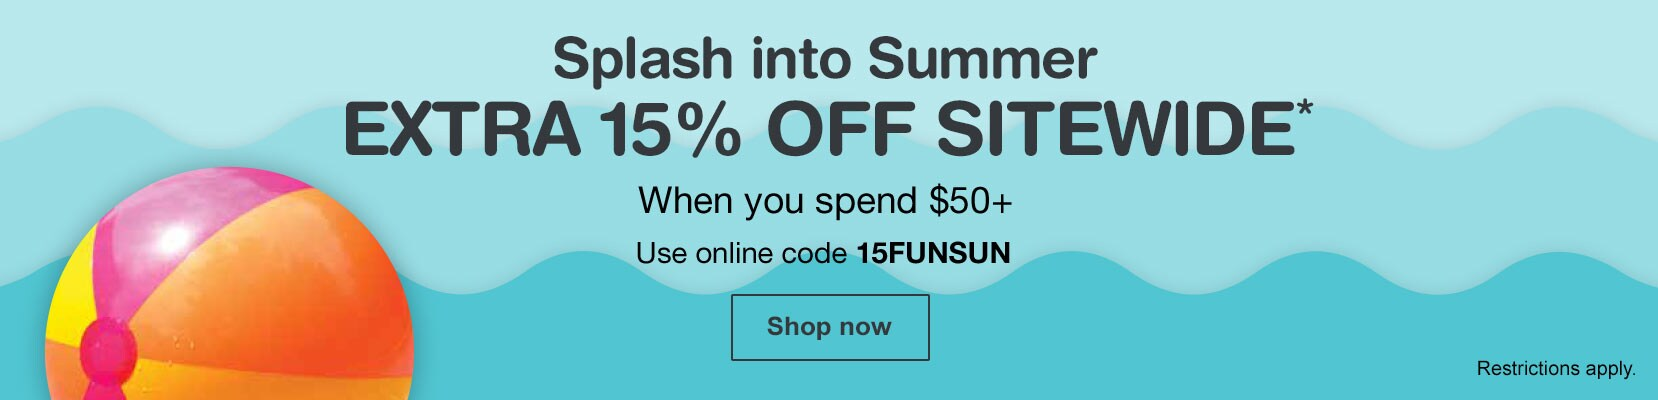 Extra 15% OFF Sitewide* when you spend $50+. Use online code 15FUNSUN. Restrictions apply. Shop now.